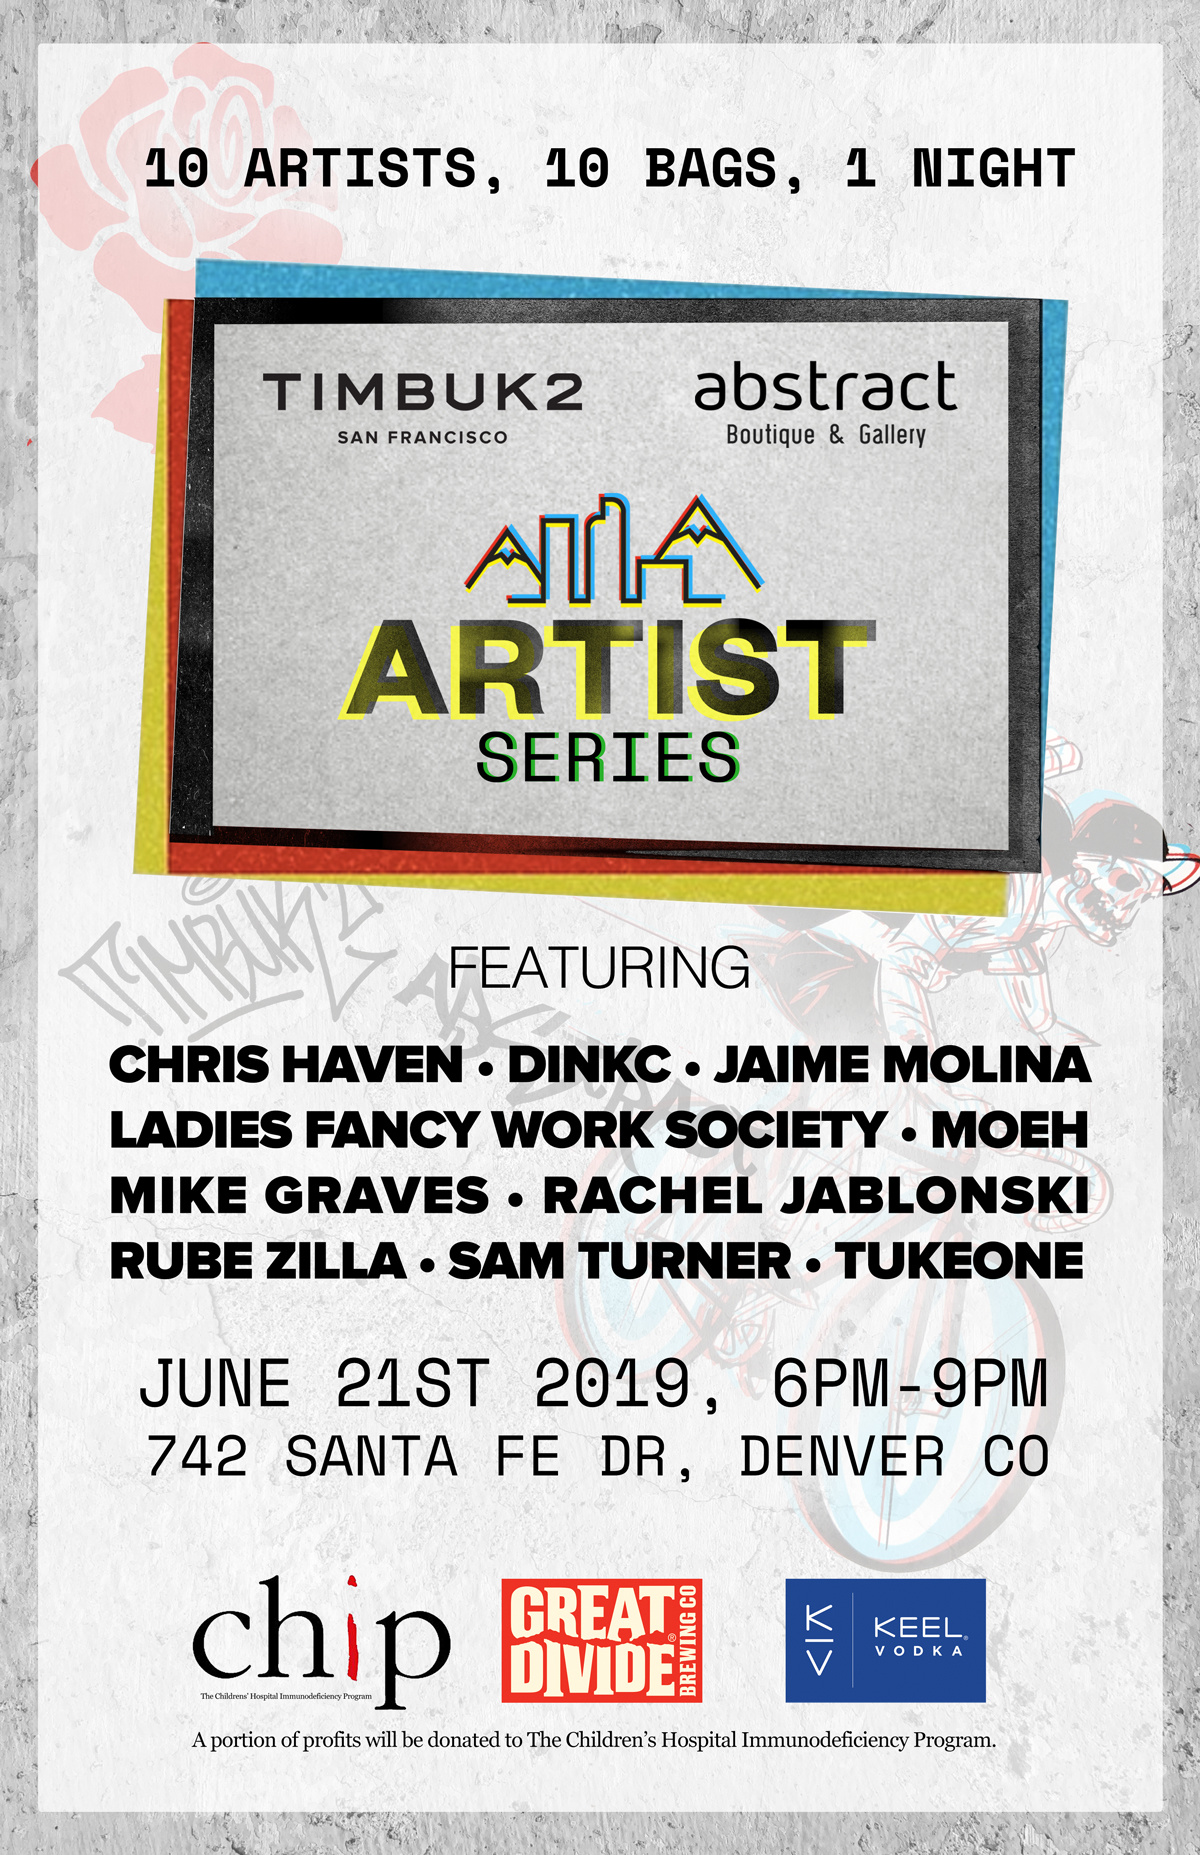 In Store Events - June 21st Timbuk2 bag show - Abstract